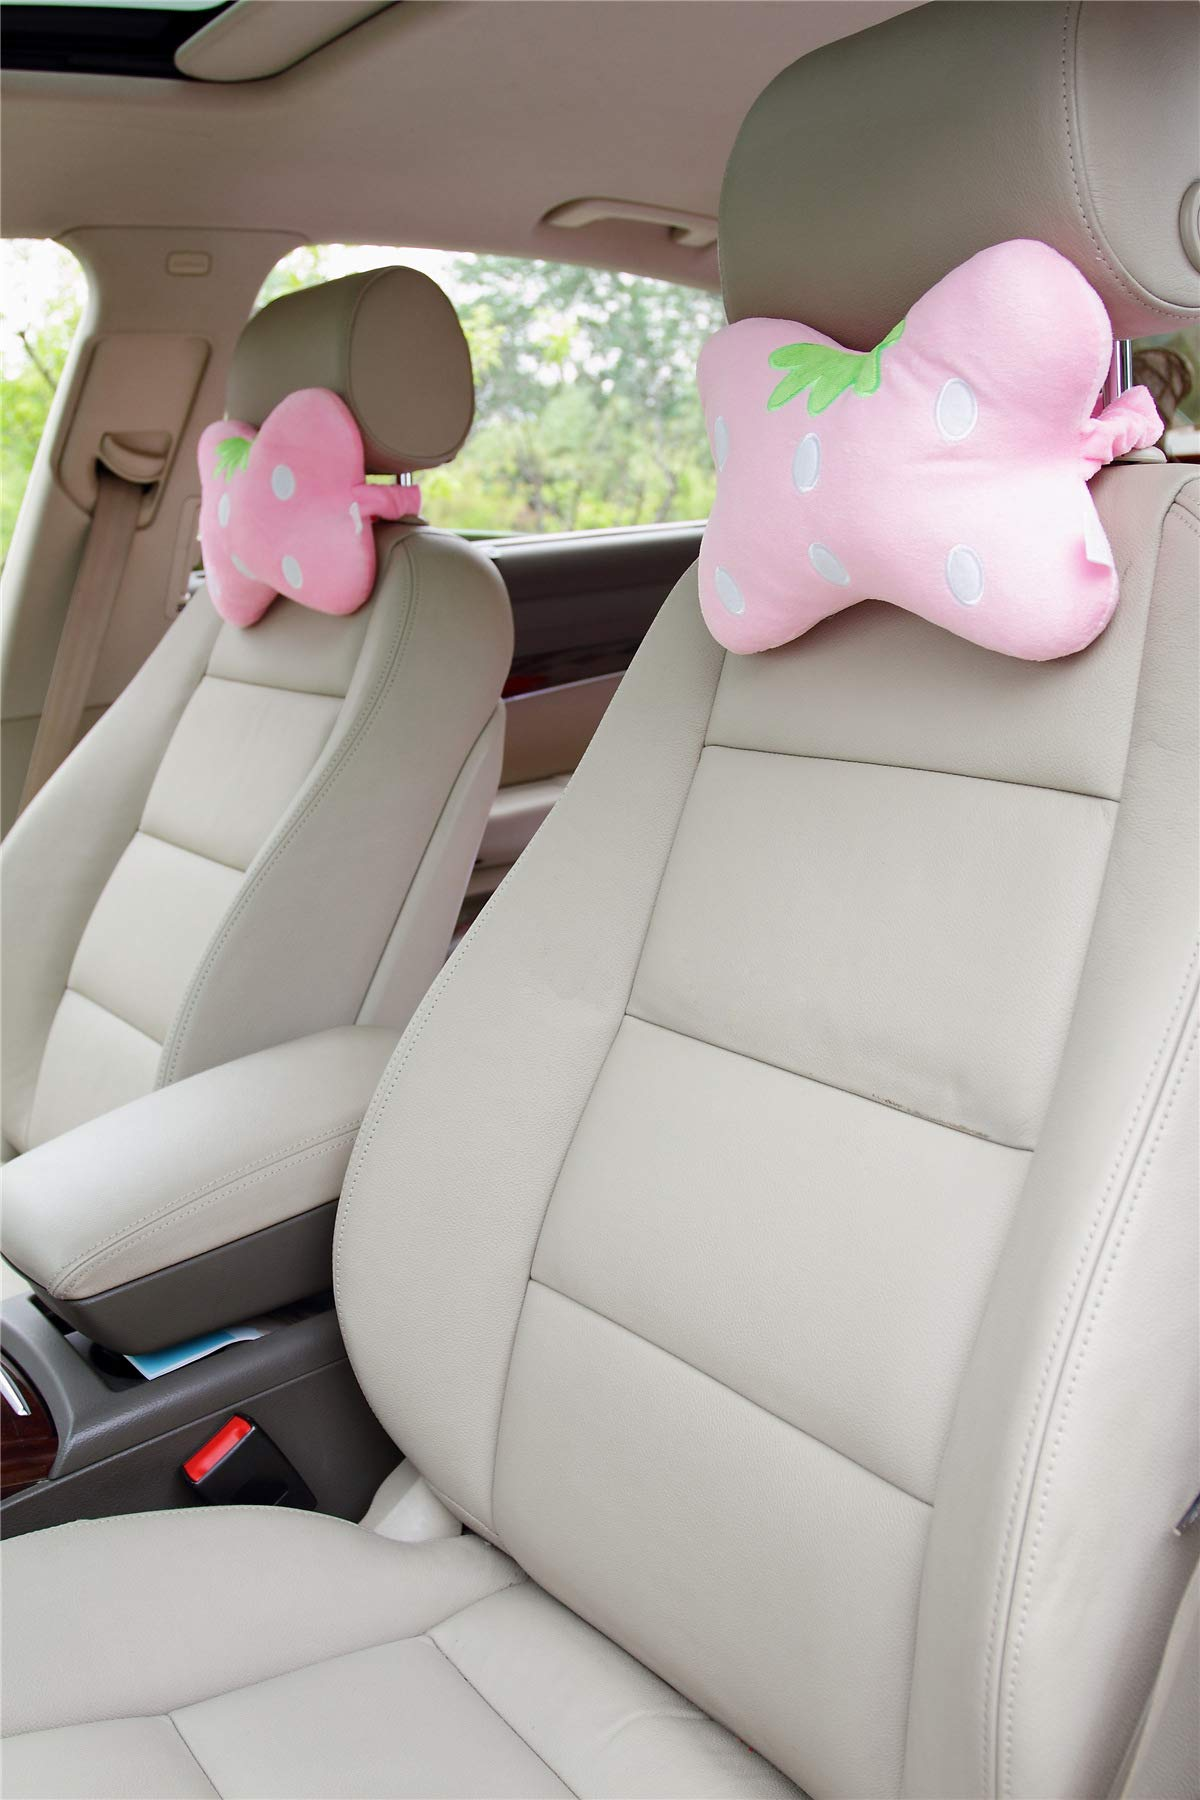 Sweet Strawberry Car Neck Pillows Car Headrest Pillows 2PCS by seemehappy (Image #2)